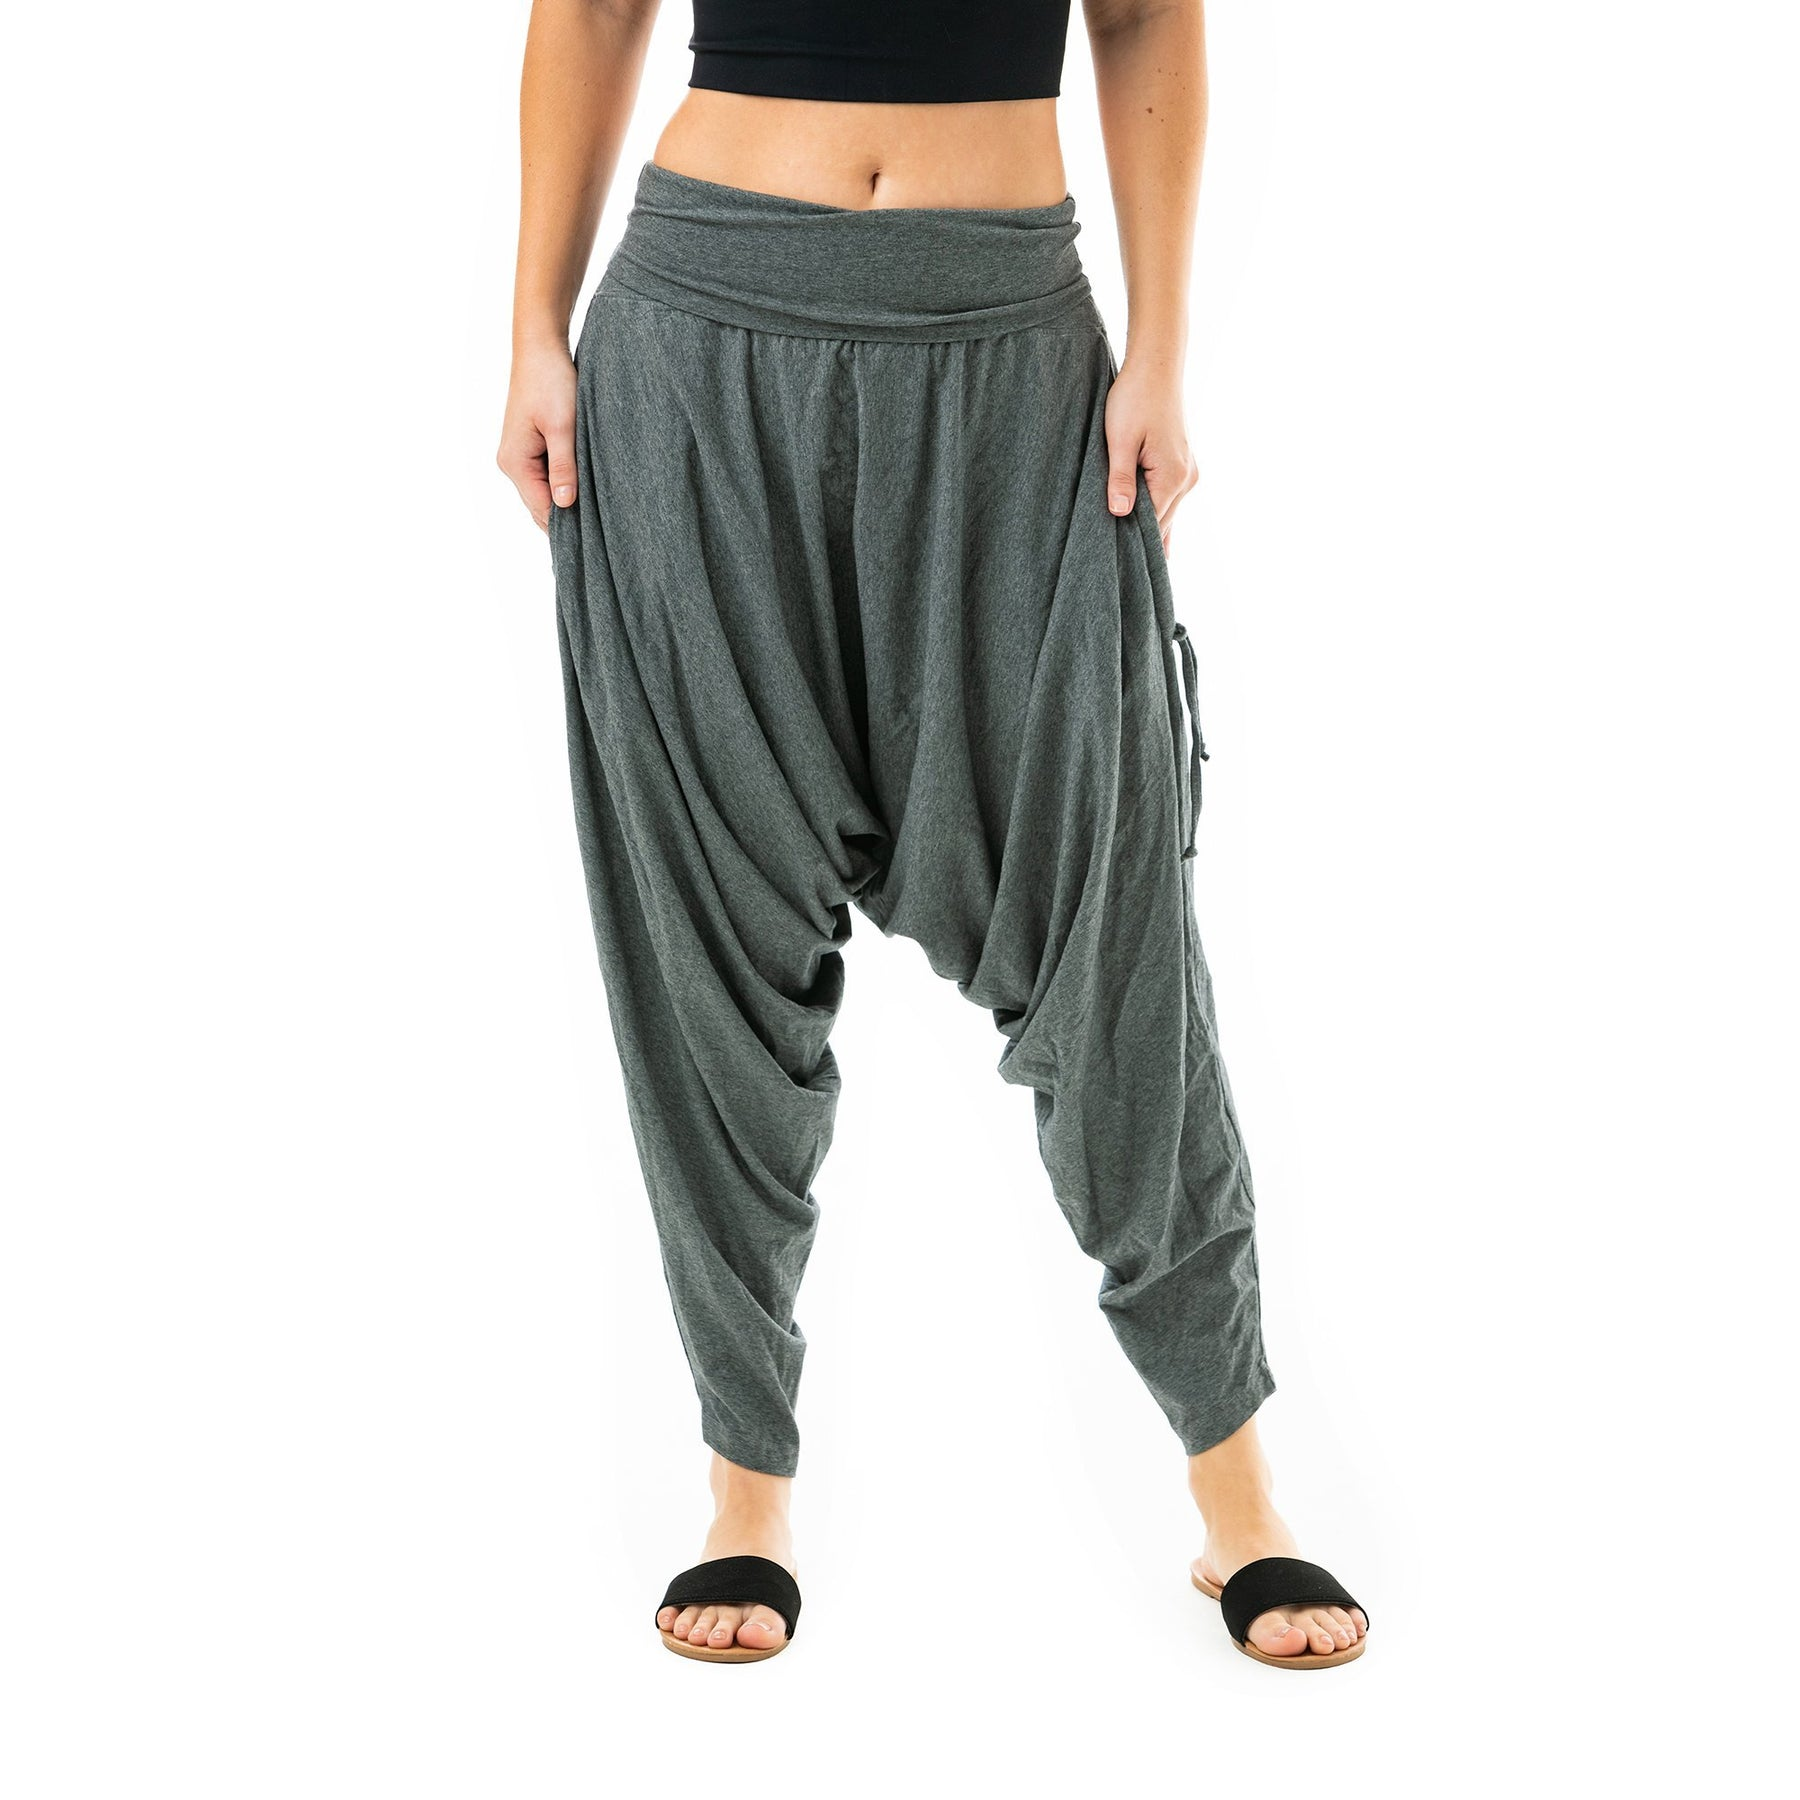 Grey and Rust striped harem pants